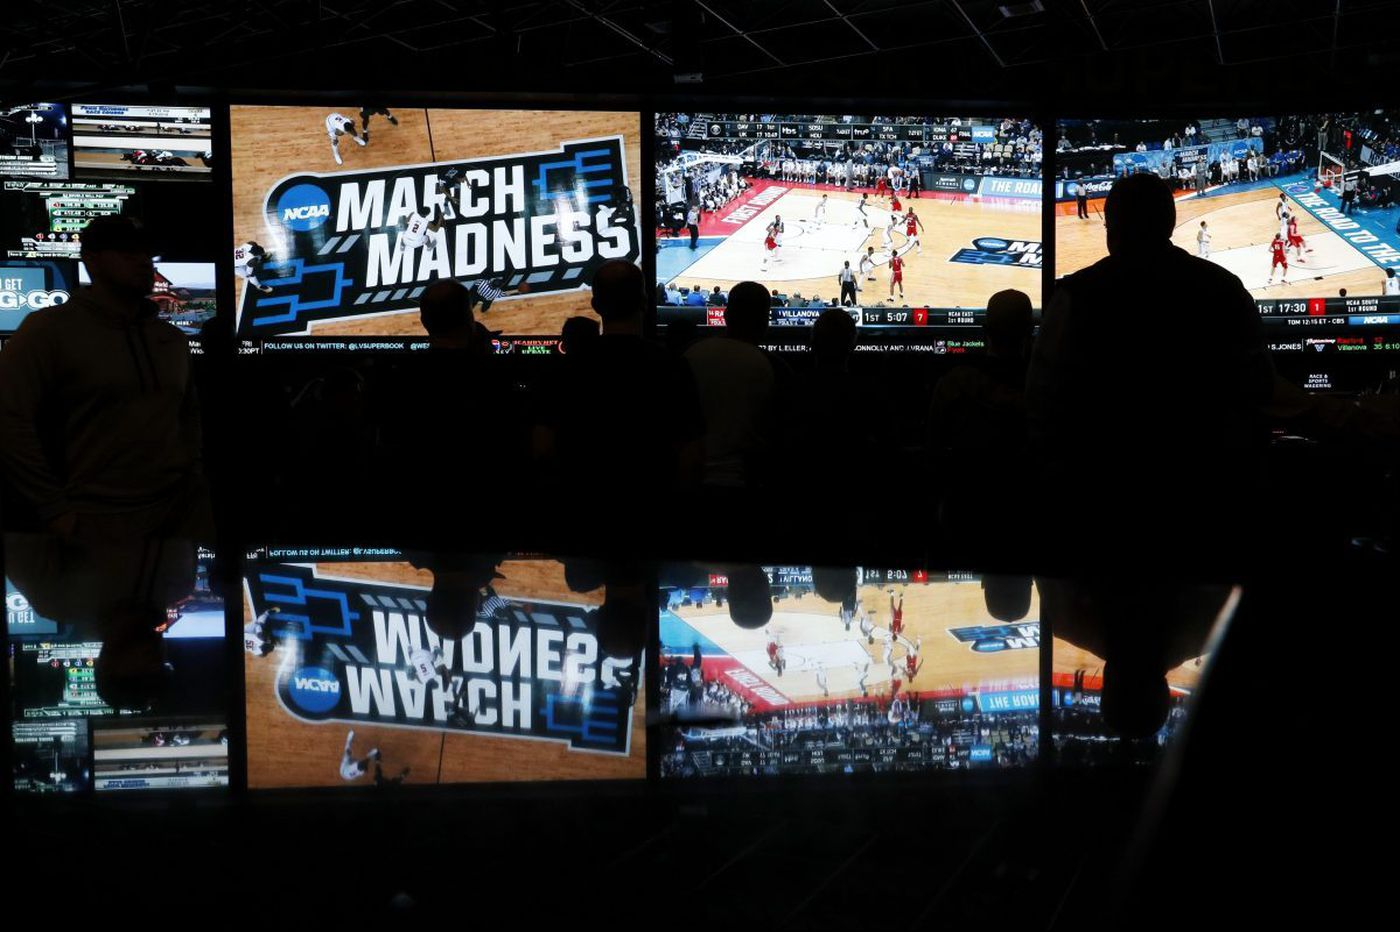 With sports betting legalized, New Jersey leads a race to lure gamblers. Will Pa. lag behind?